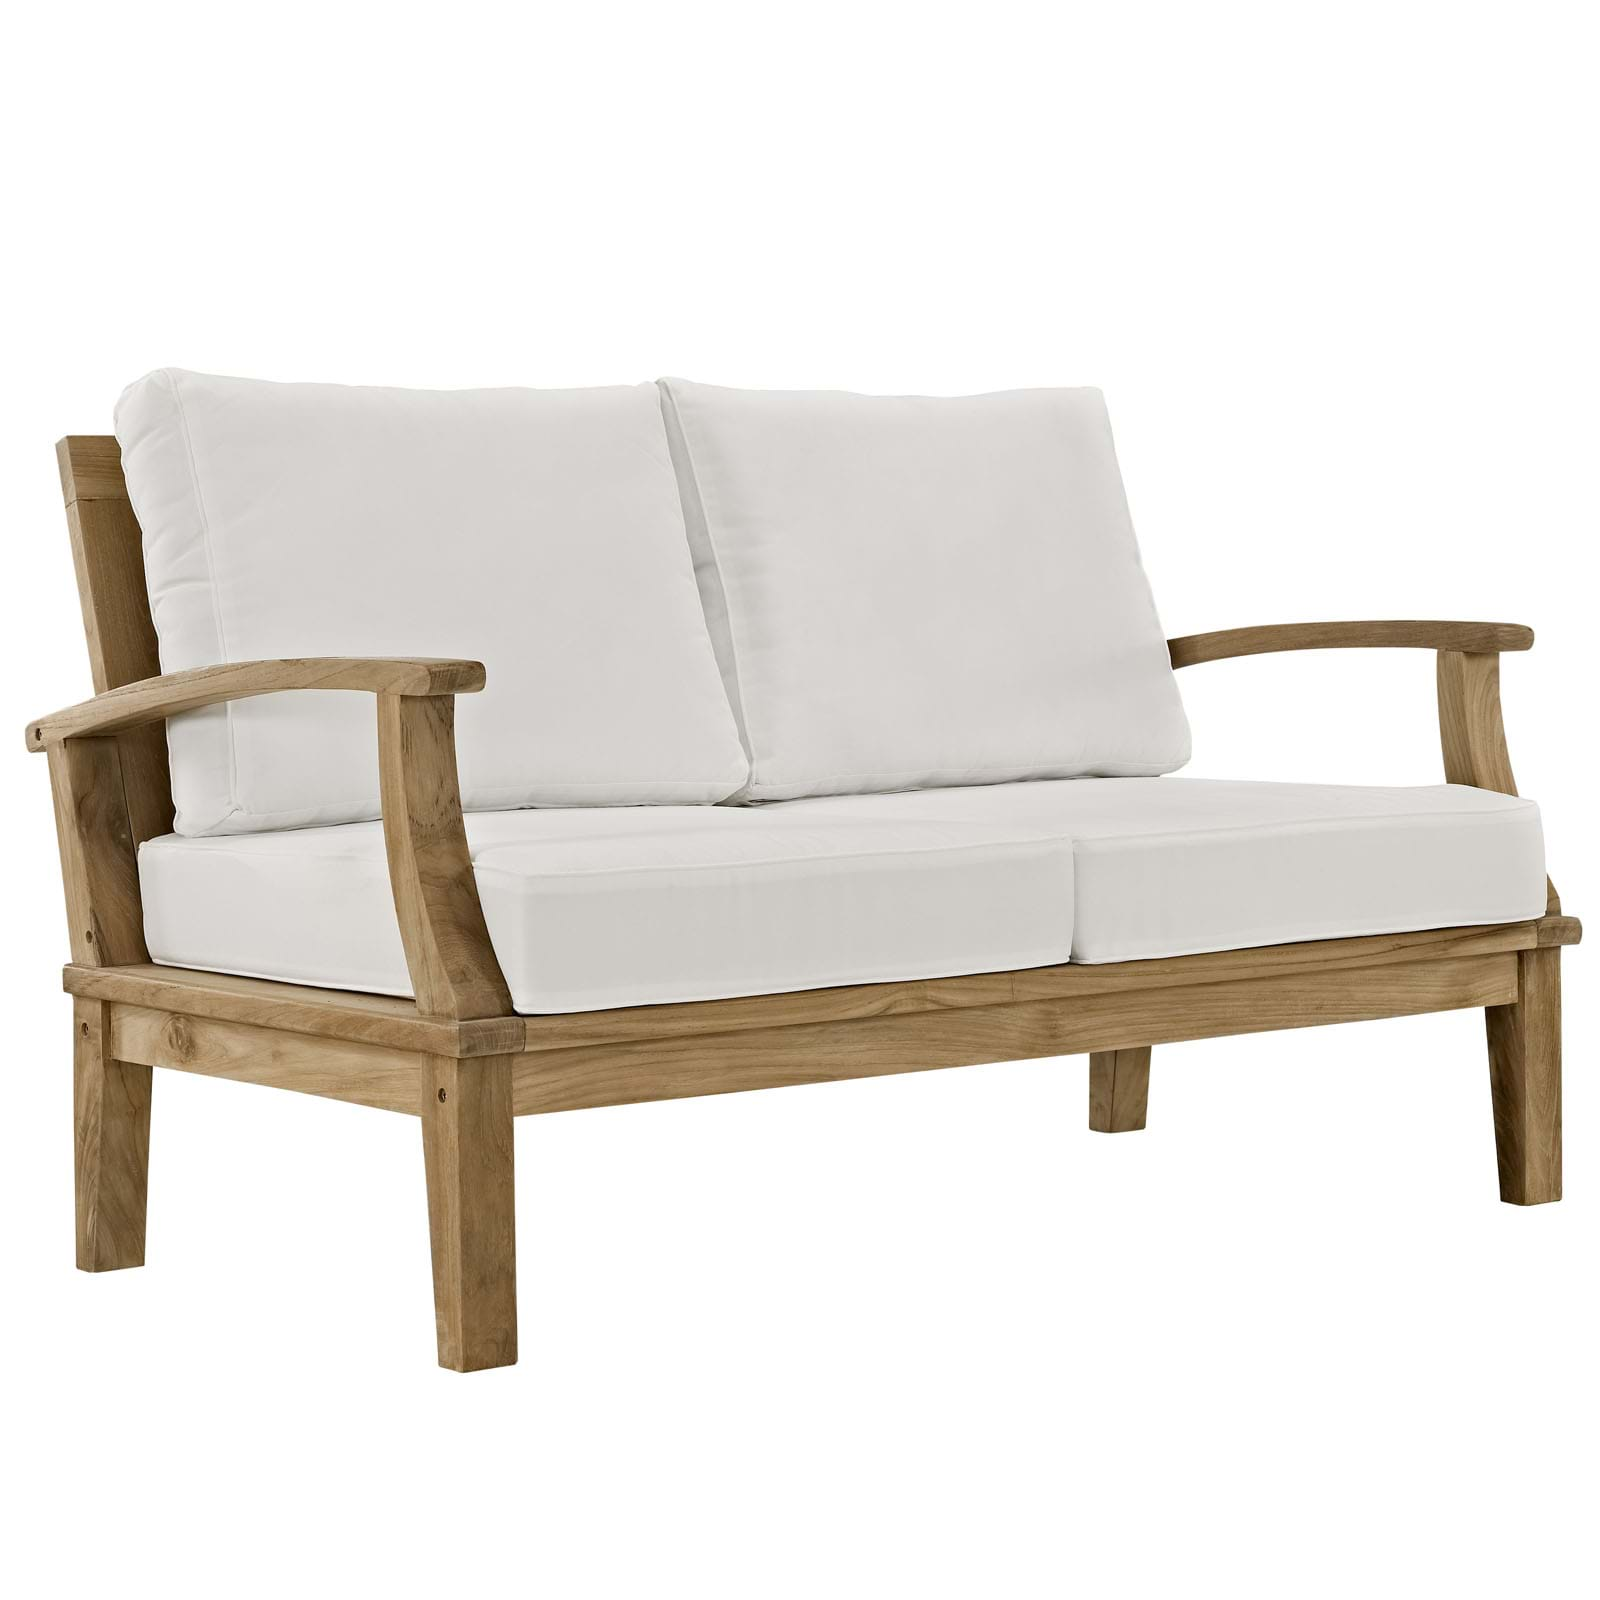 Marina Outdoor Patio Teak Loveseat